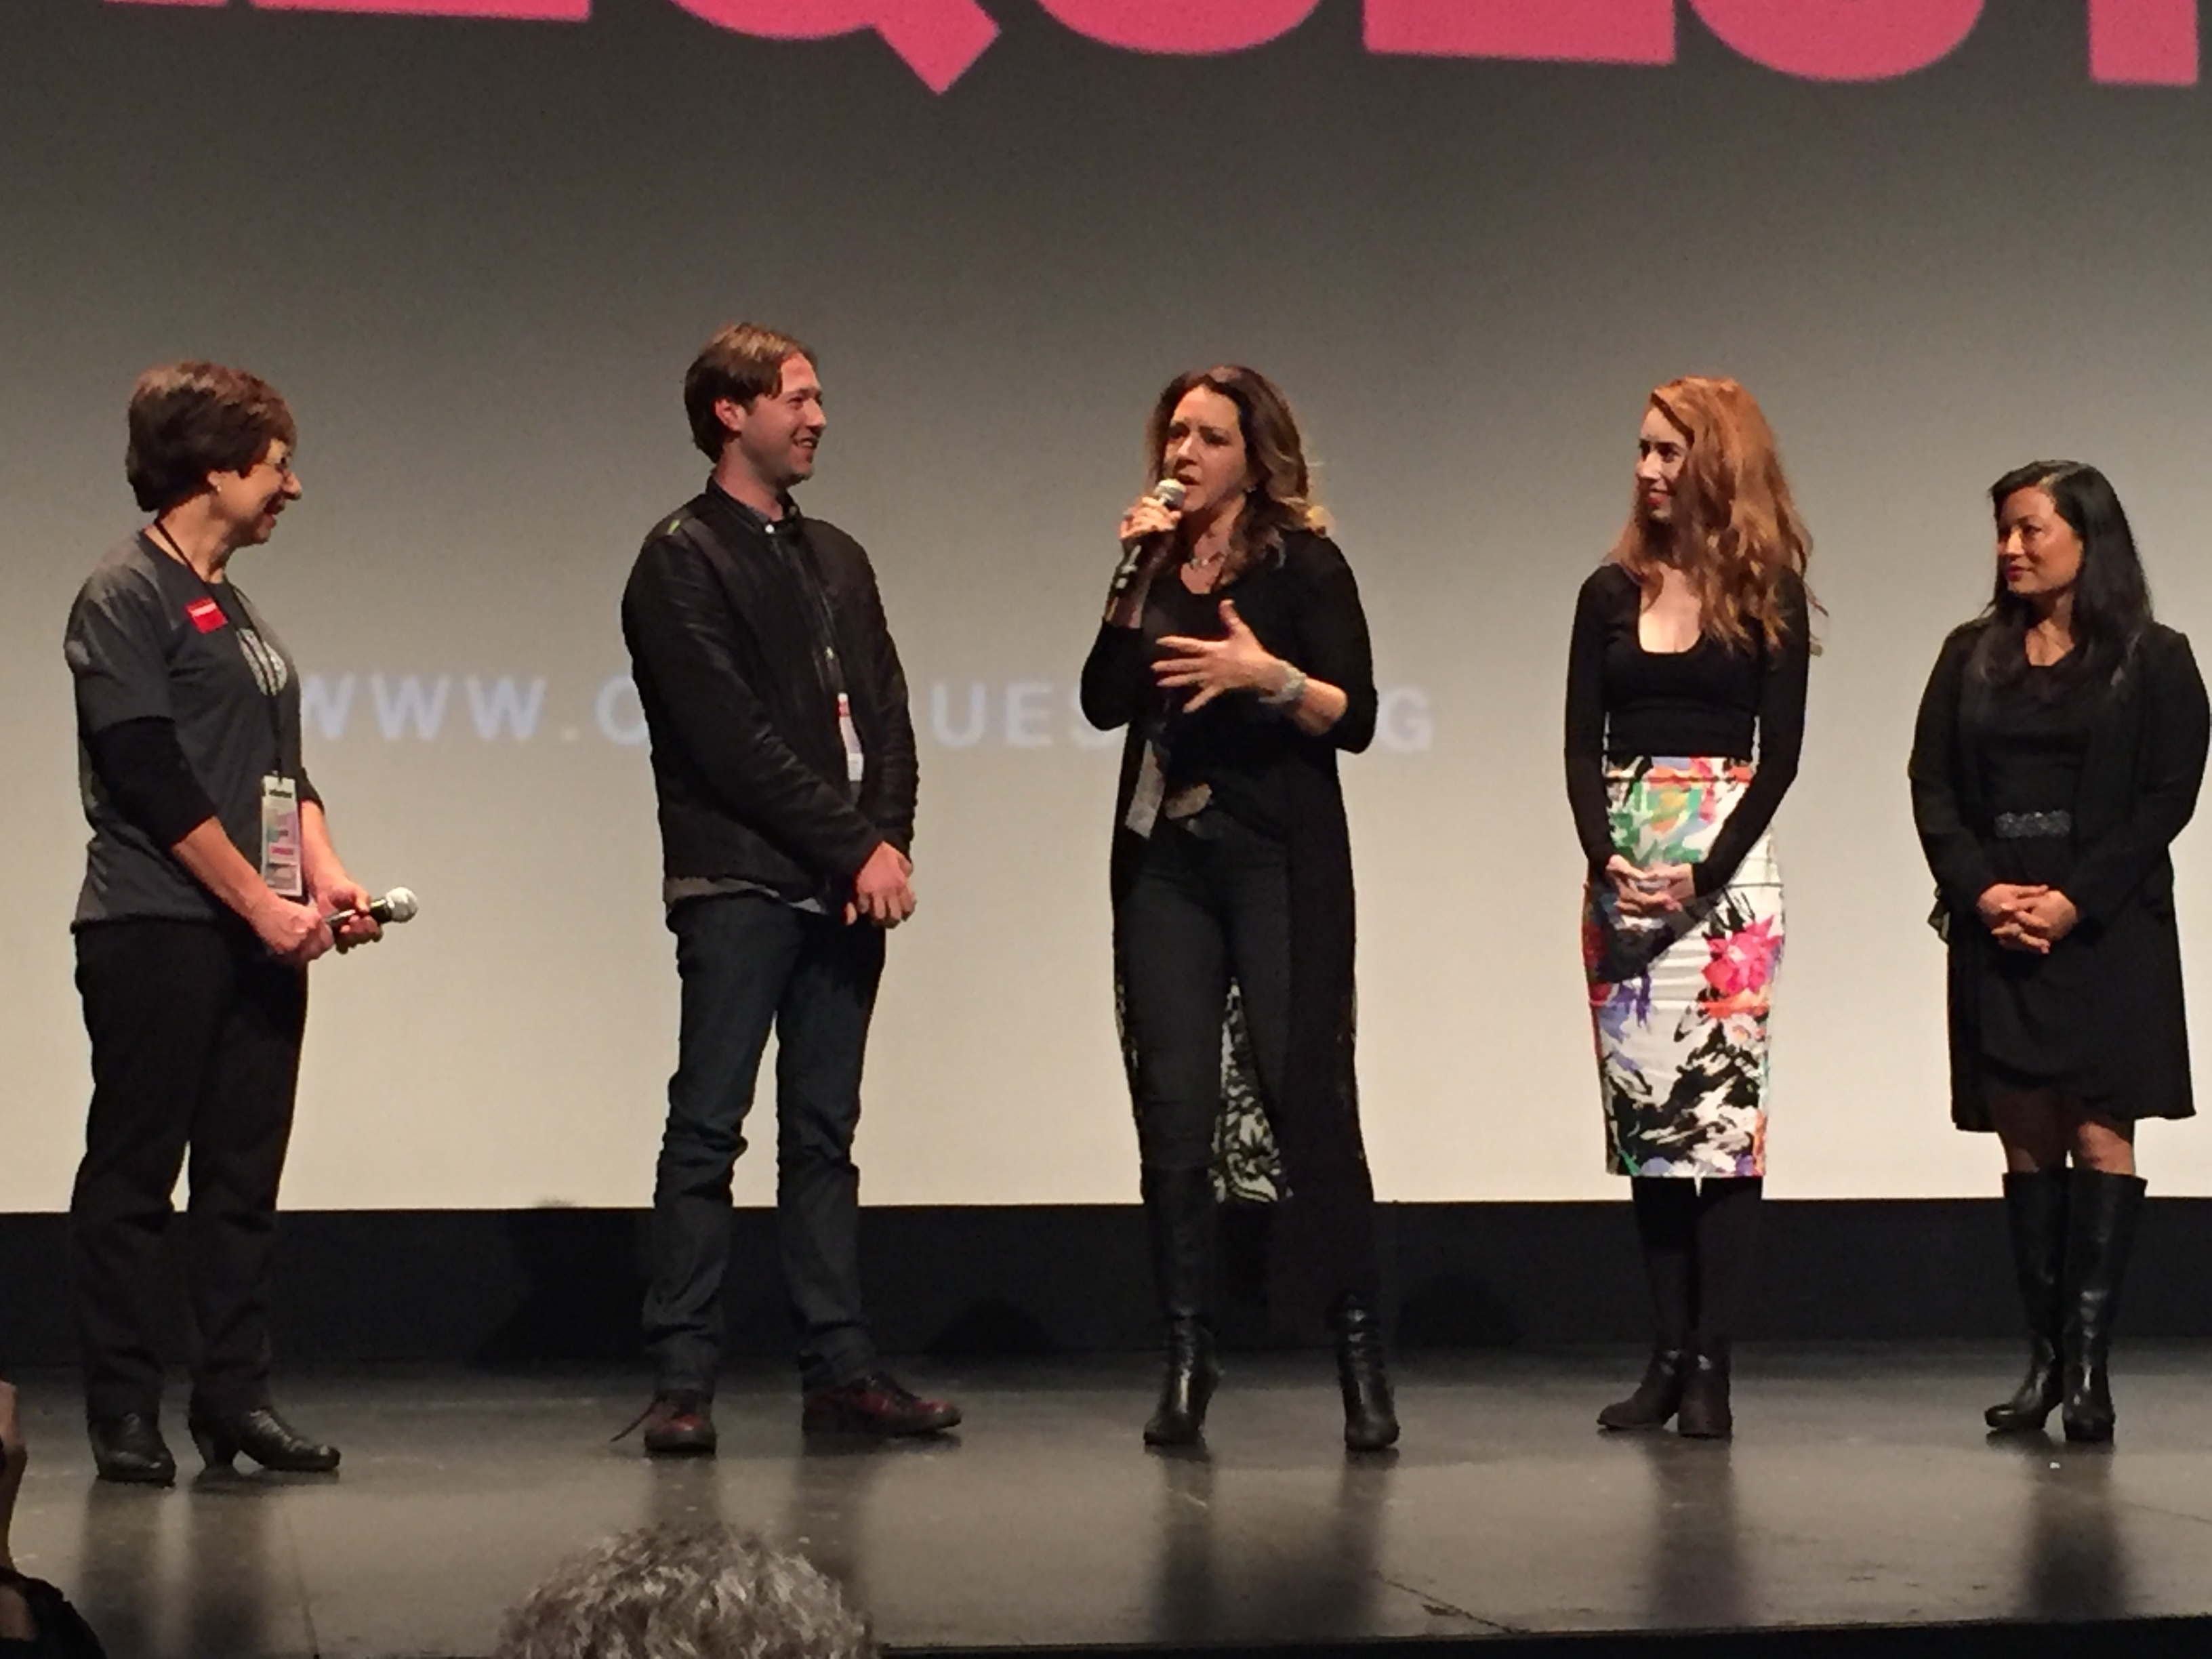 Russell Brown, Joely Fisher, Ayumi Iizuka representing Search Engines at Cinequest